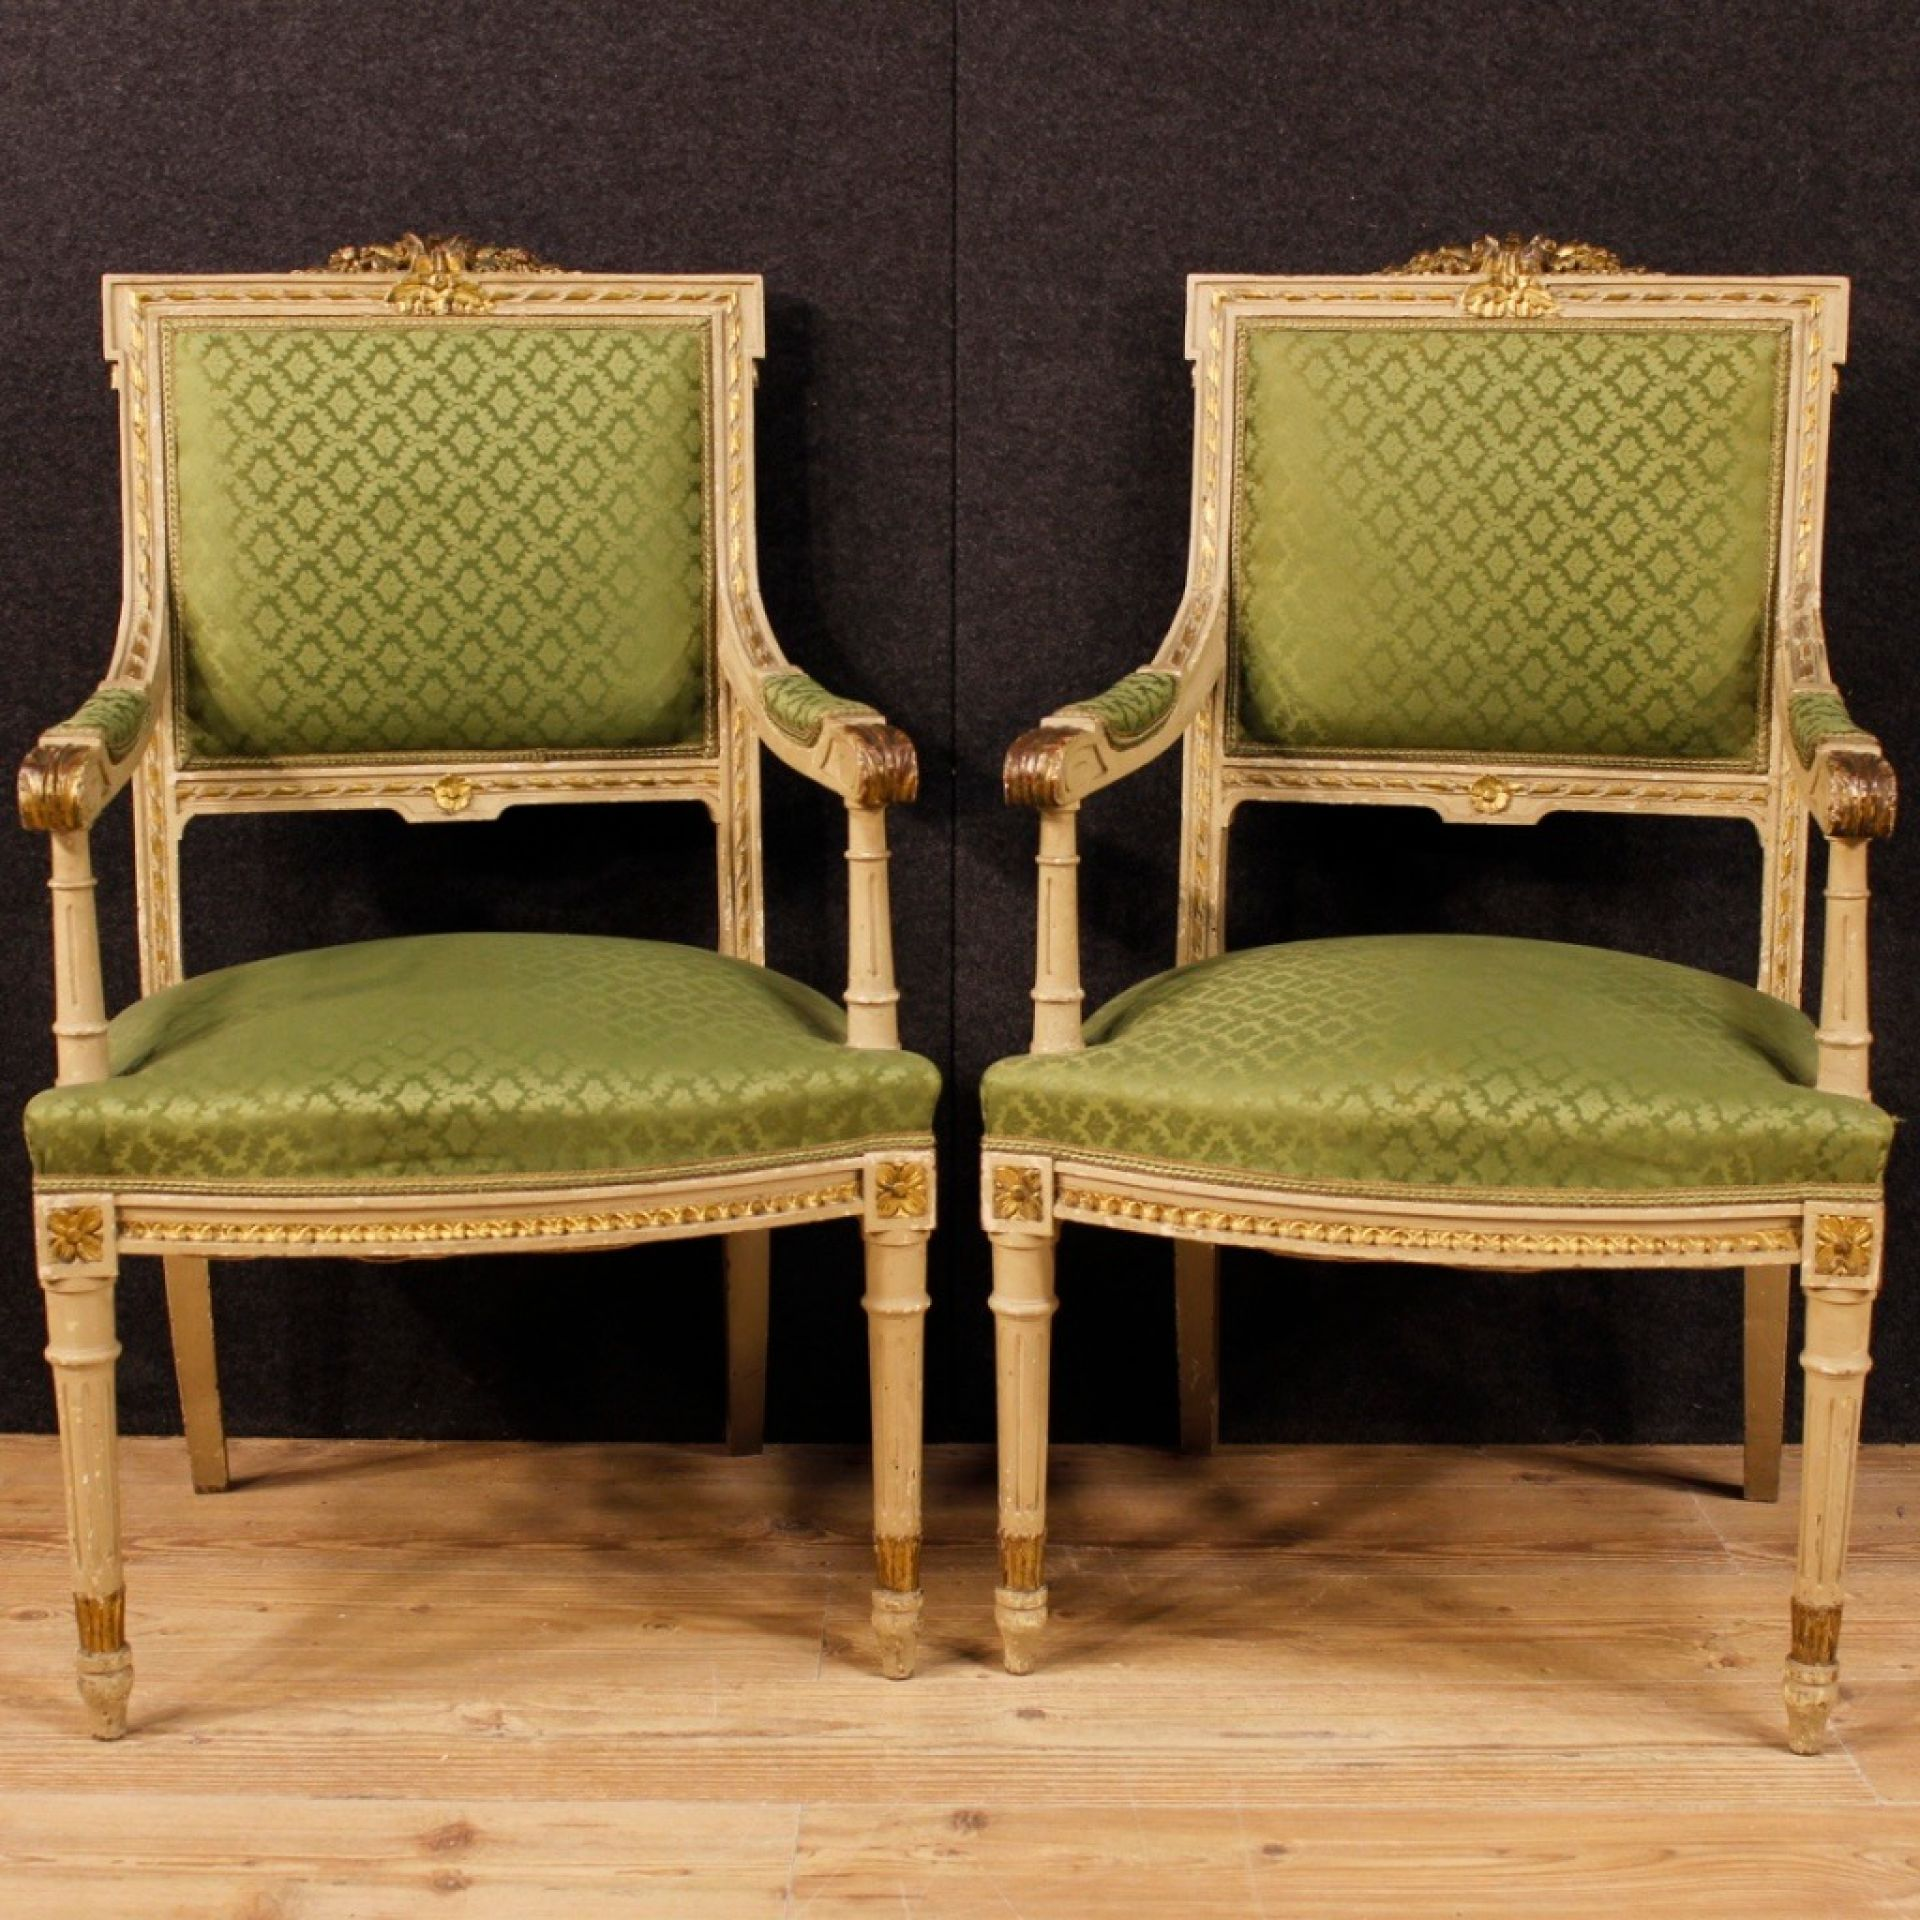 Pair Of Italian Lacquered, Carved And Gilded Armchairs In Louis XVI Style